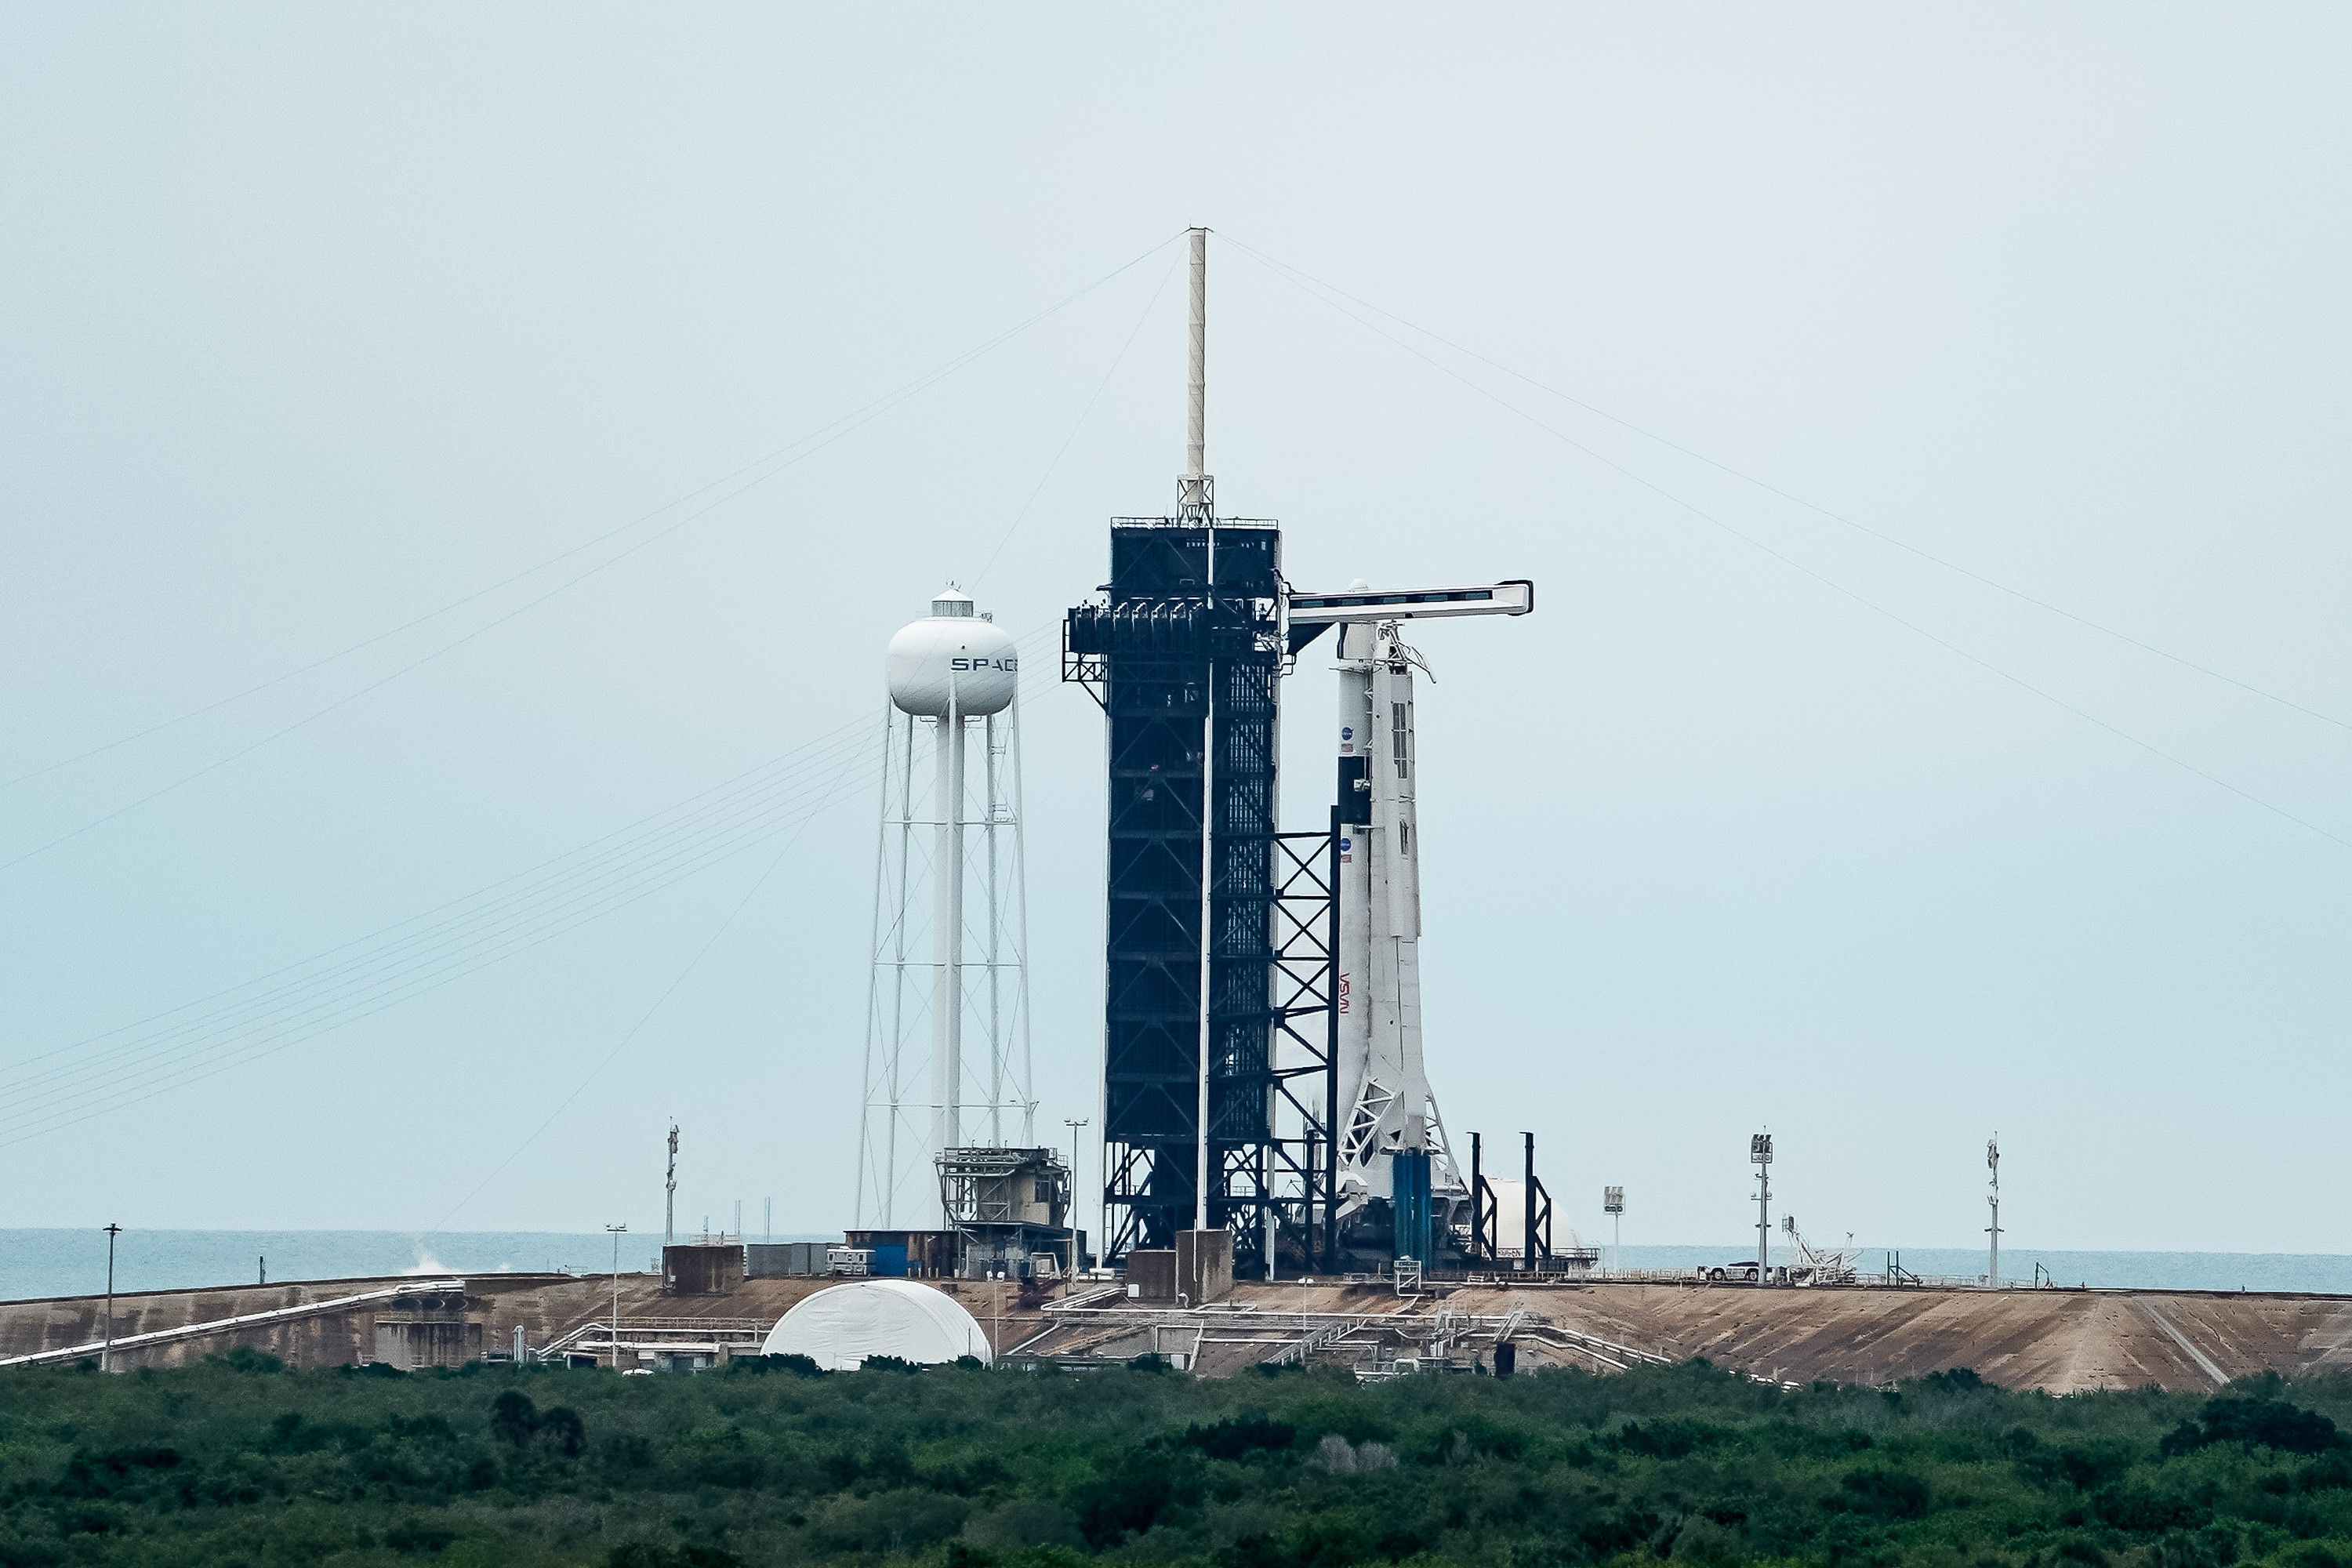 Free download high resolution image - free image free photo free stock image public domain picture -SpaceX Falcon 9的发射场